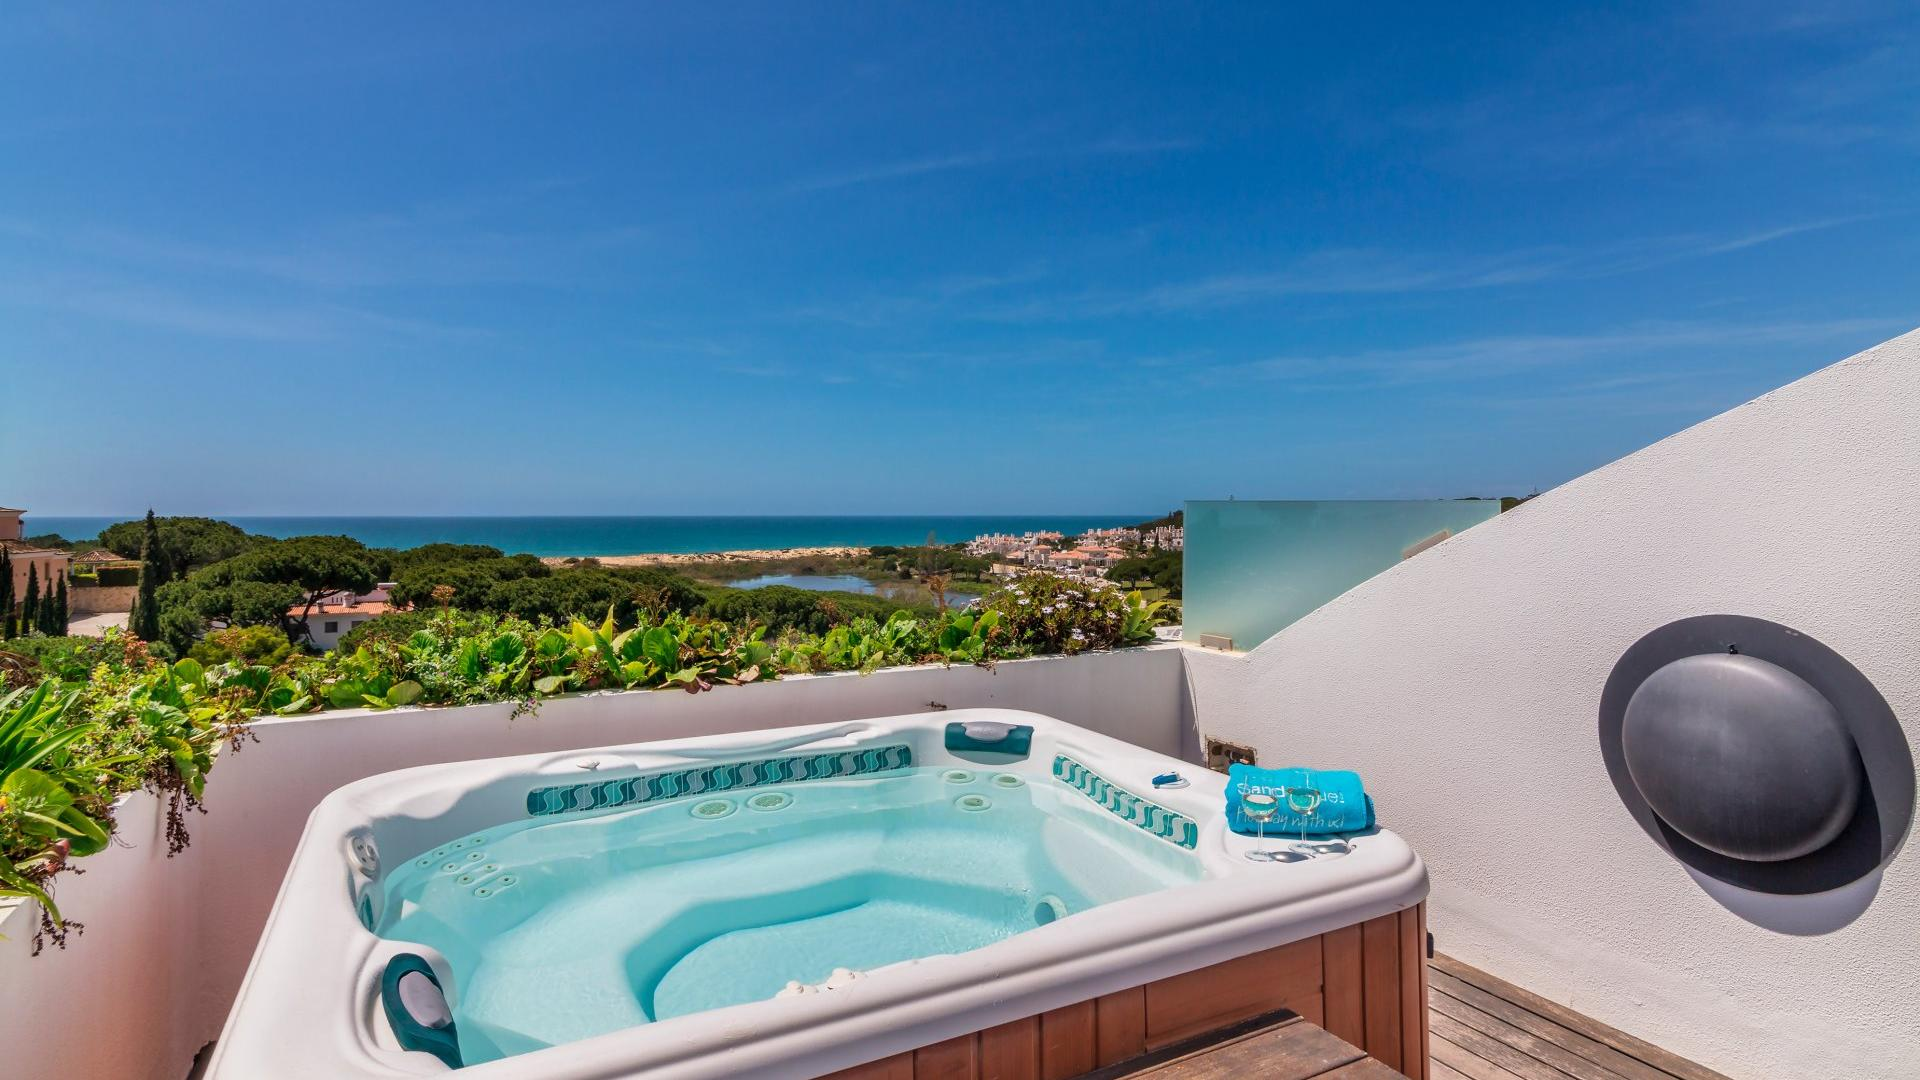 Apartment Sea View - Vale do Lobo, Algarve - 16.jpg